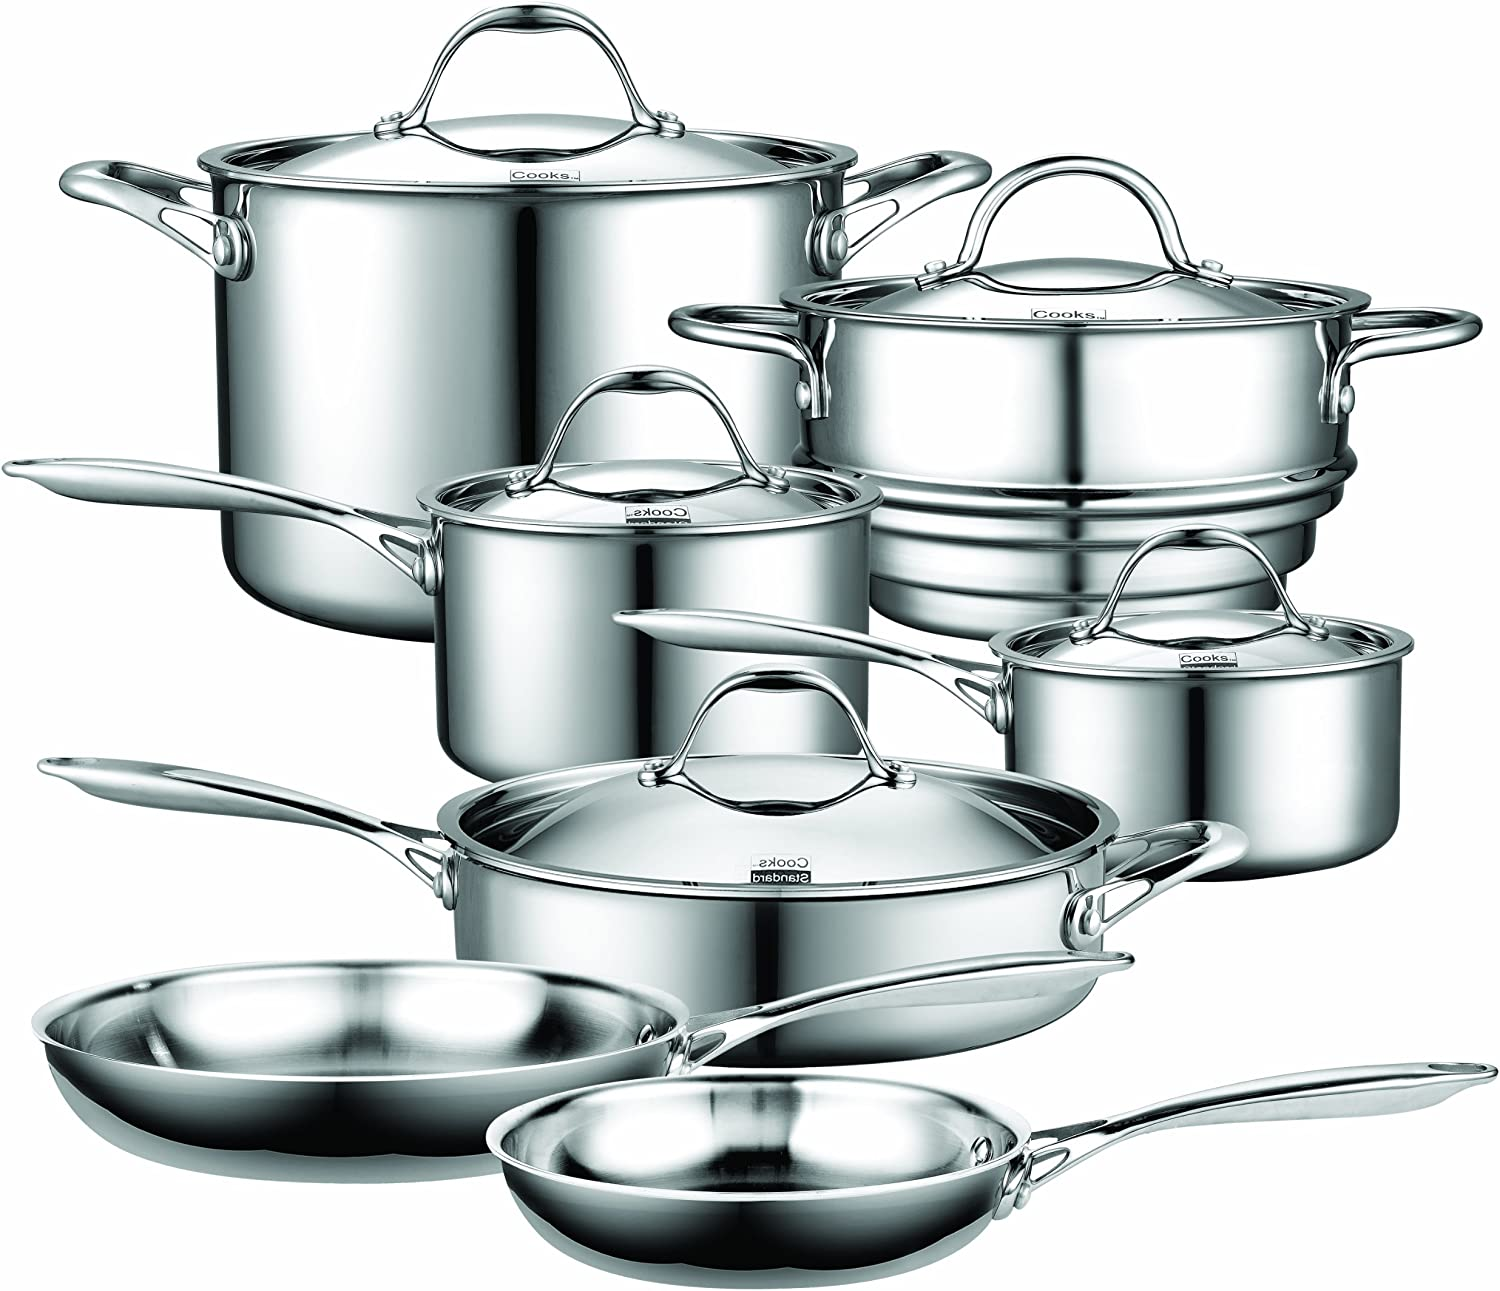 The Top 10 Best Induction Cookware